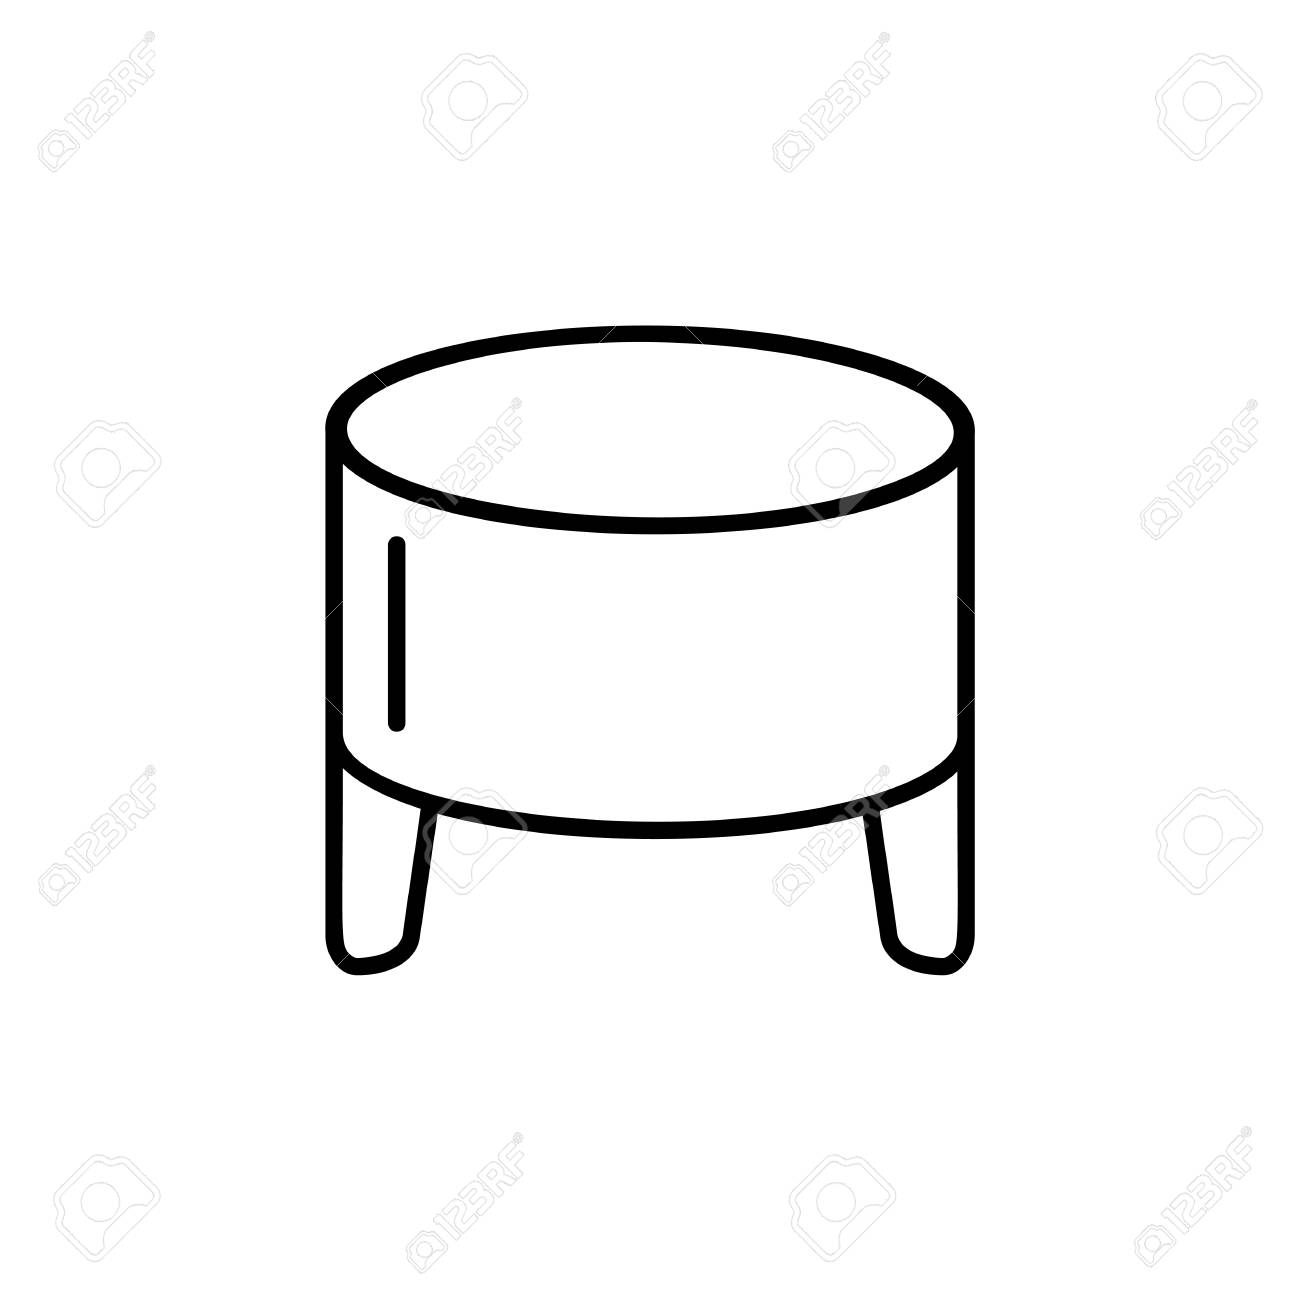 Swell Black White Vector Illustration Of Round Leather Ottoman Pouf Gmtry Best Dining Table And Chair Ideas Images Gmtryco